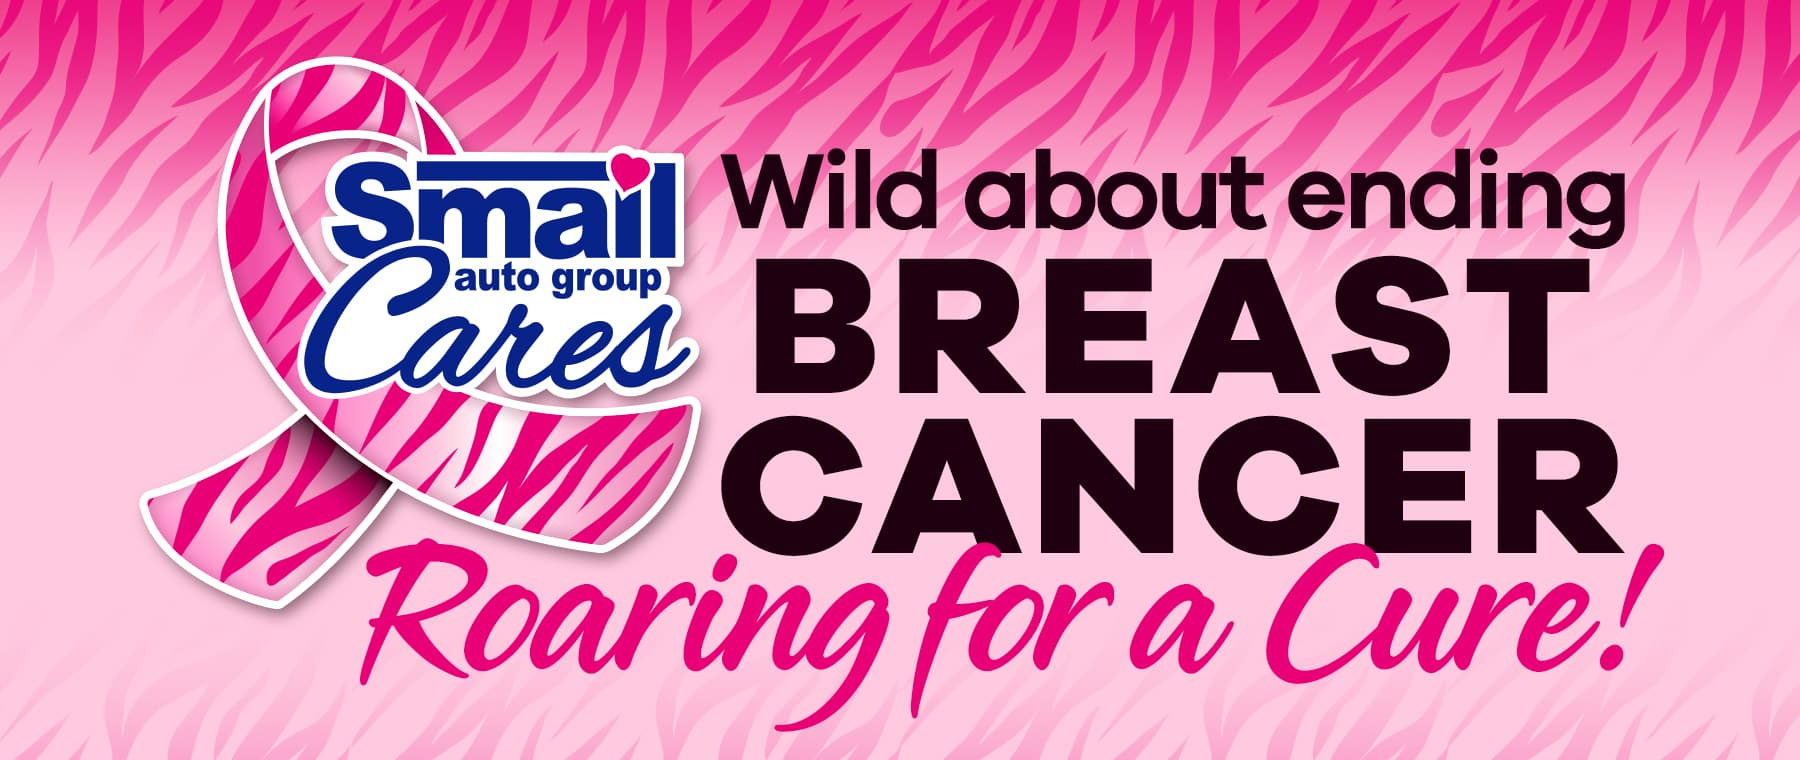 Smail Acres - Roaring for a Cure!